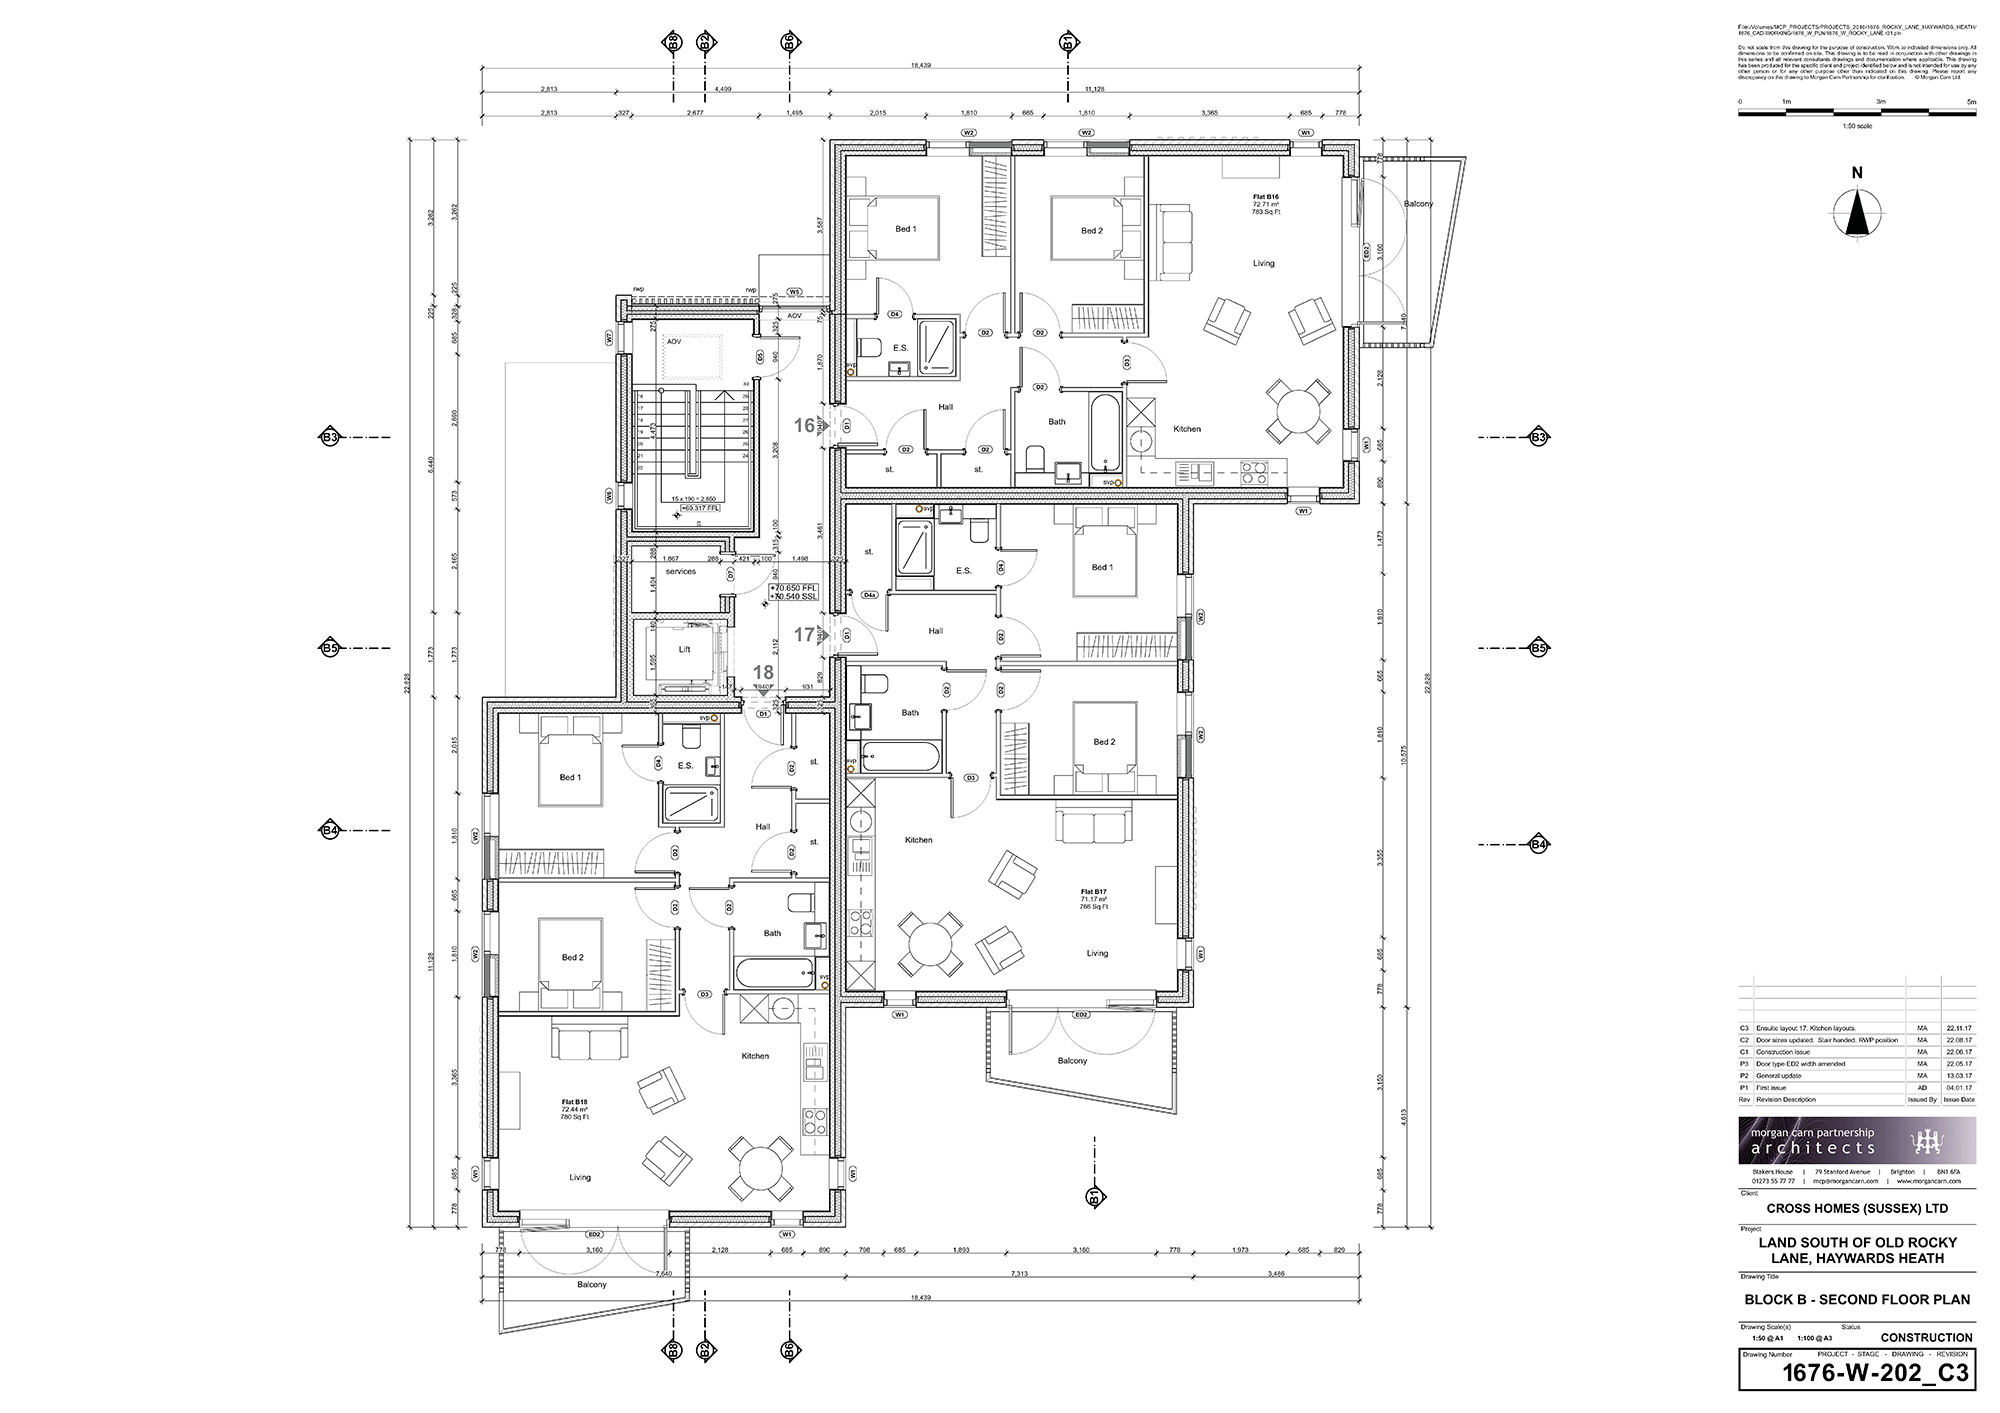 Block B - Second Floor Plan